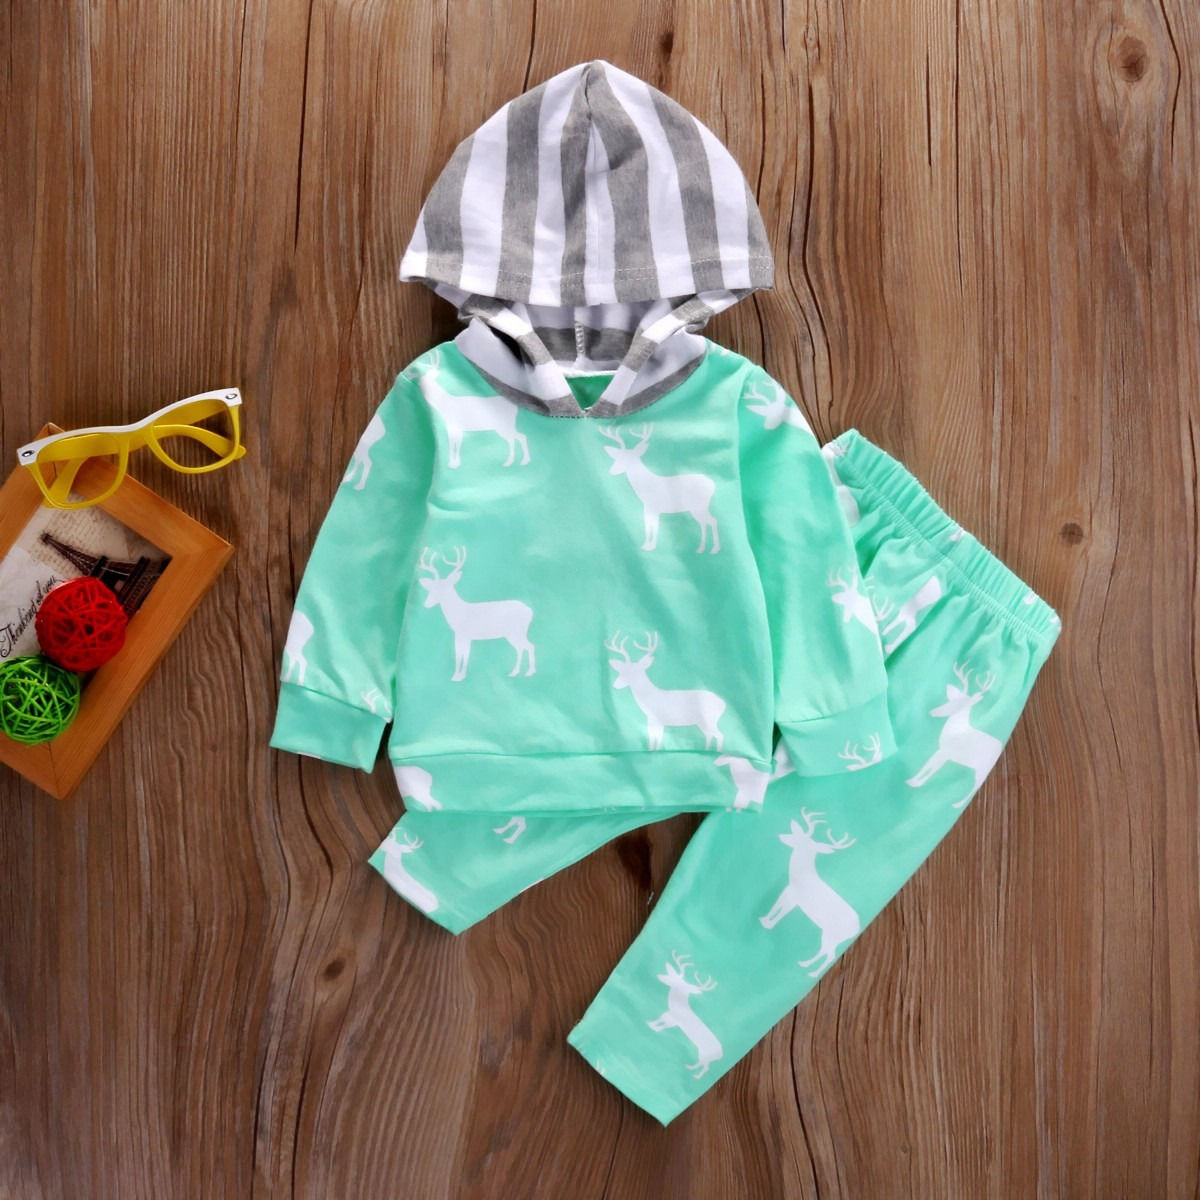 Newborn Baby Boys Girls Deer Hooded Tops Coat Pants Casual Cotton Green 2PCS Outfits Set Baby Boy Clothes 0-24M newborn infant baby boy girl cotton tops romper pants 3pcs outfits set clothes warm toddler boys girls clothing set casual soft